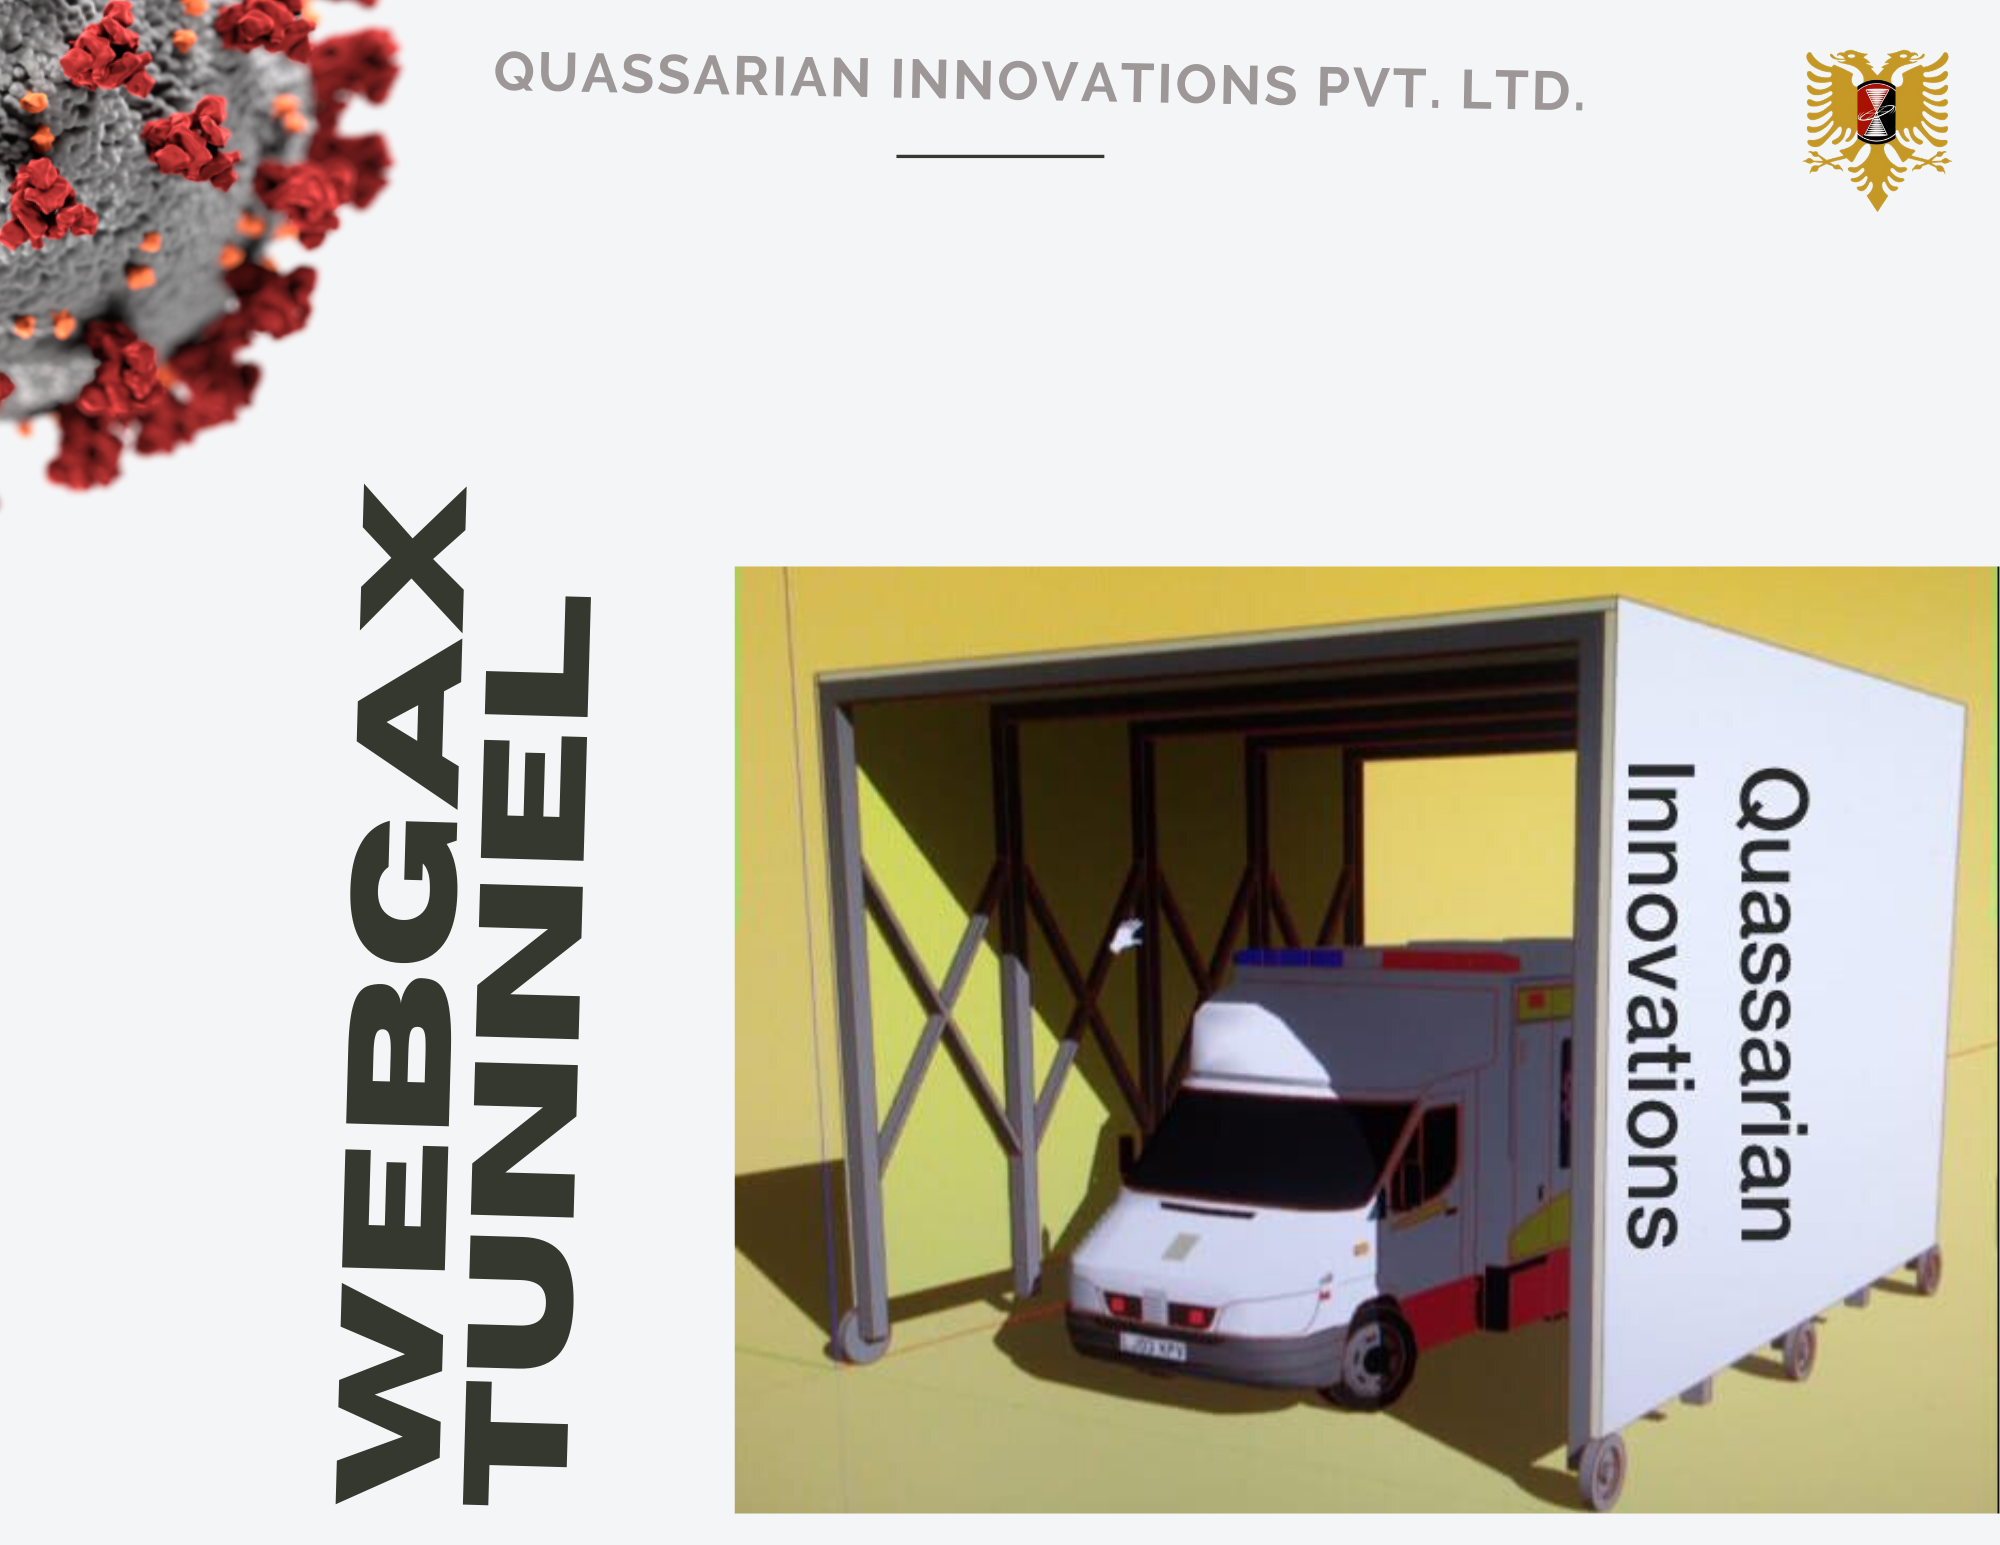 Webgax Tunnel Disinfector